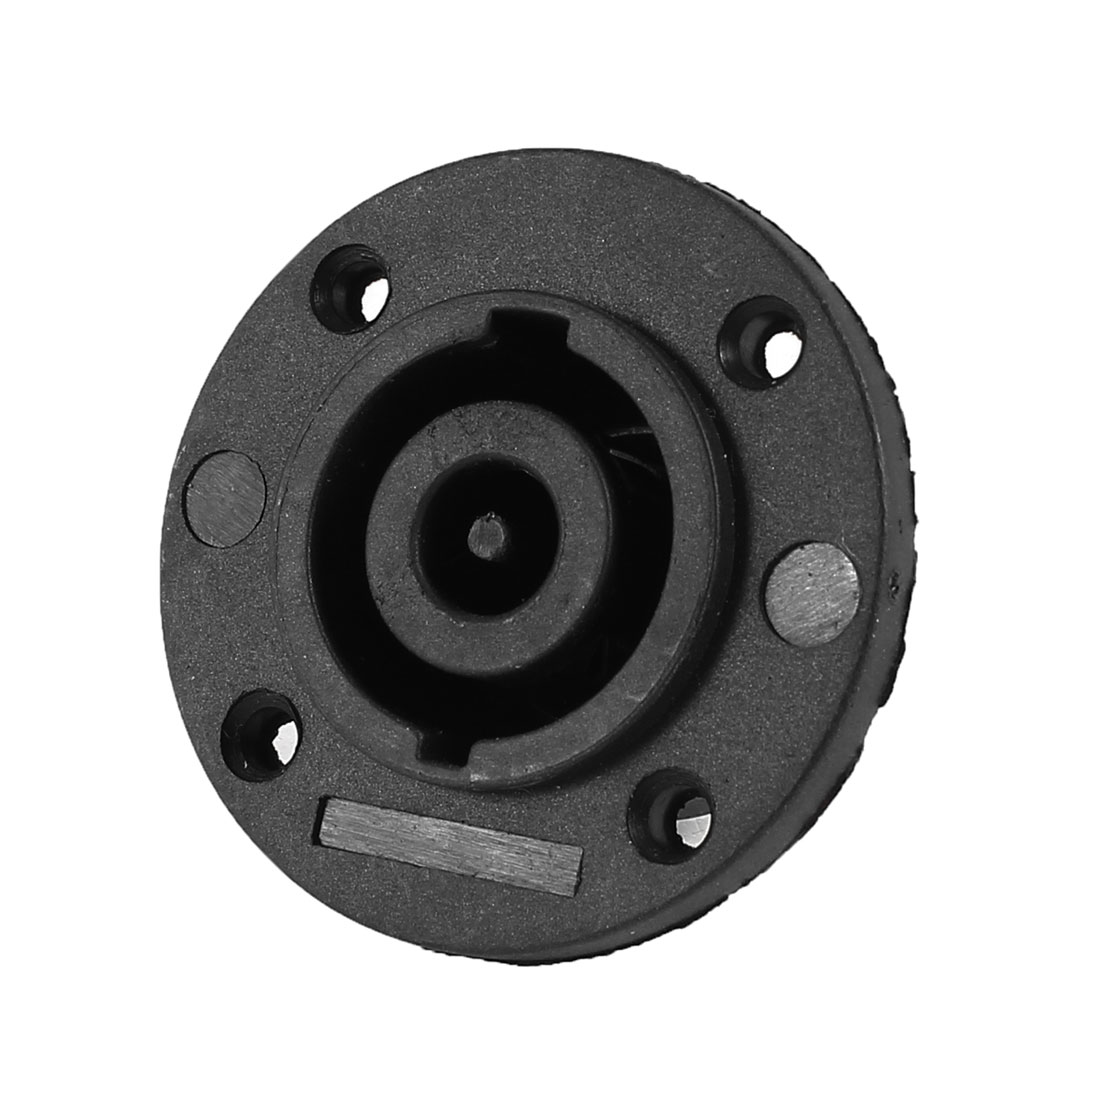 Black Speaker 8 Pole PCB Round Panle Mount Socket Connector